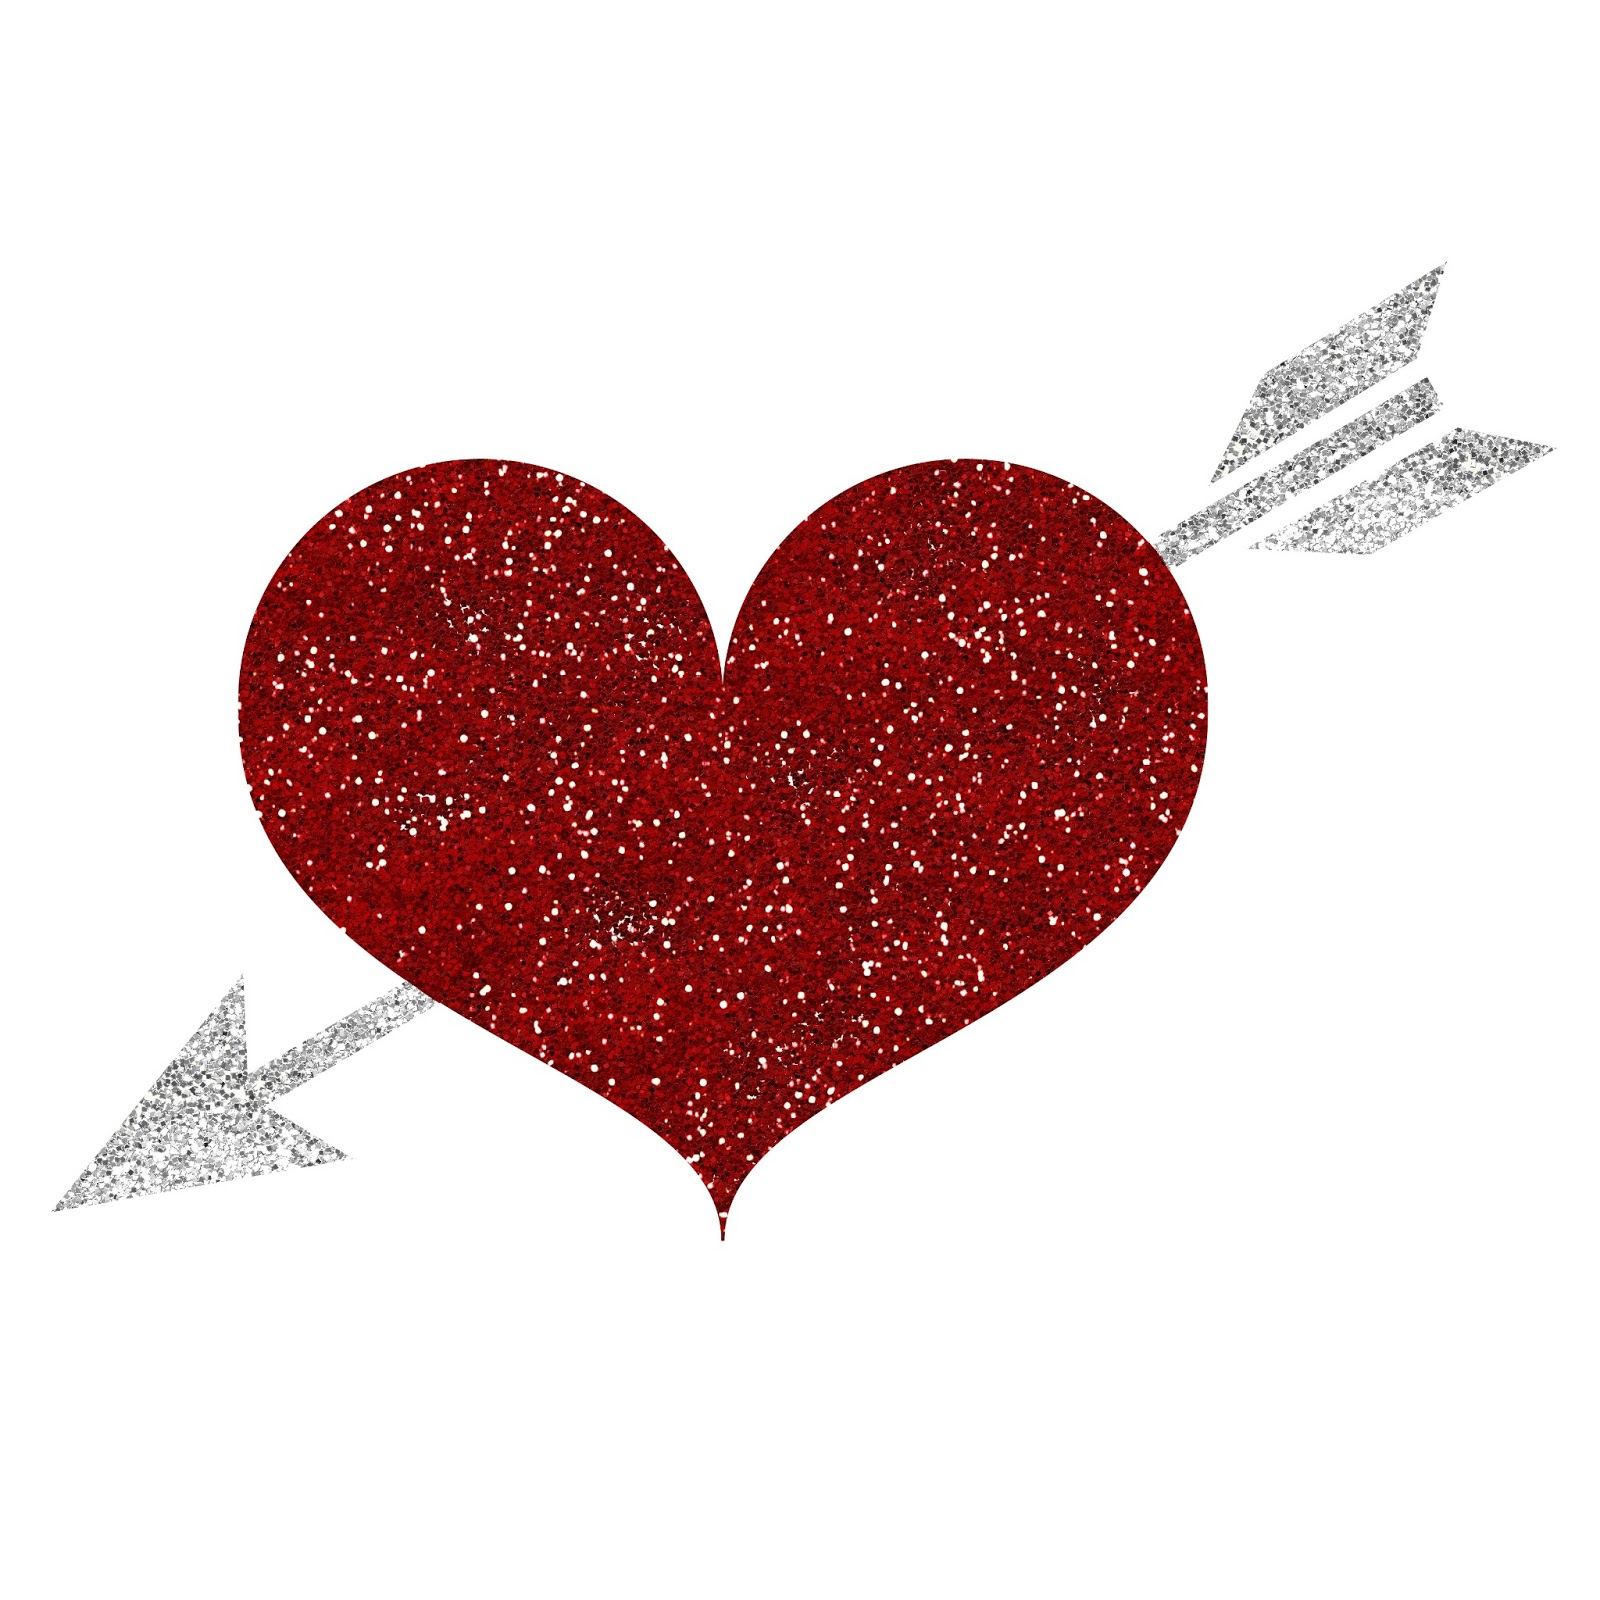 Free Sparkly Heart Cliparts, Download Free Clip Art, Free Clip Art.